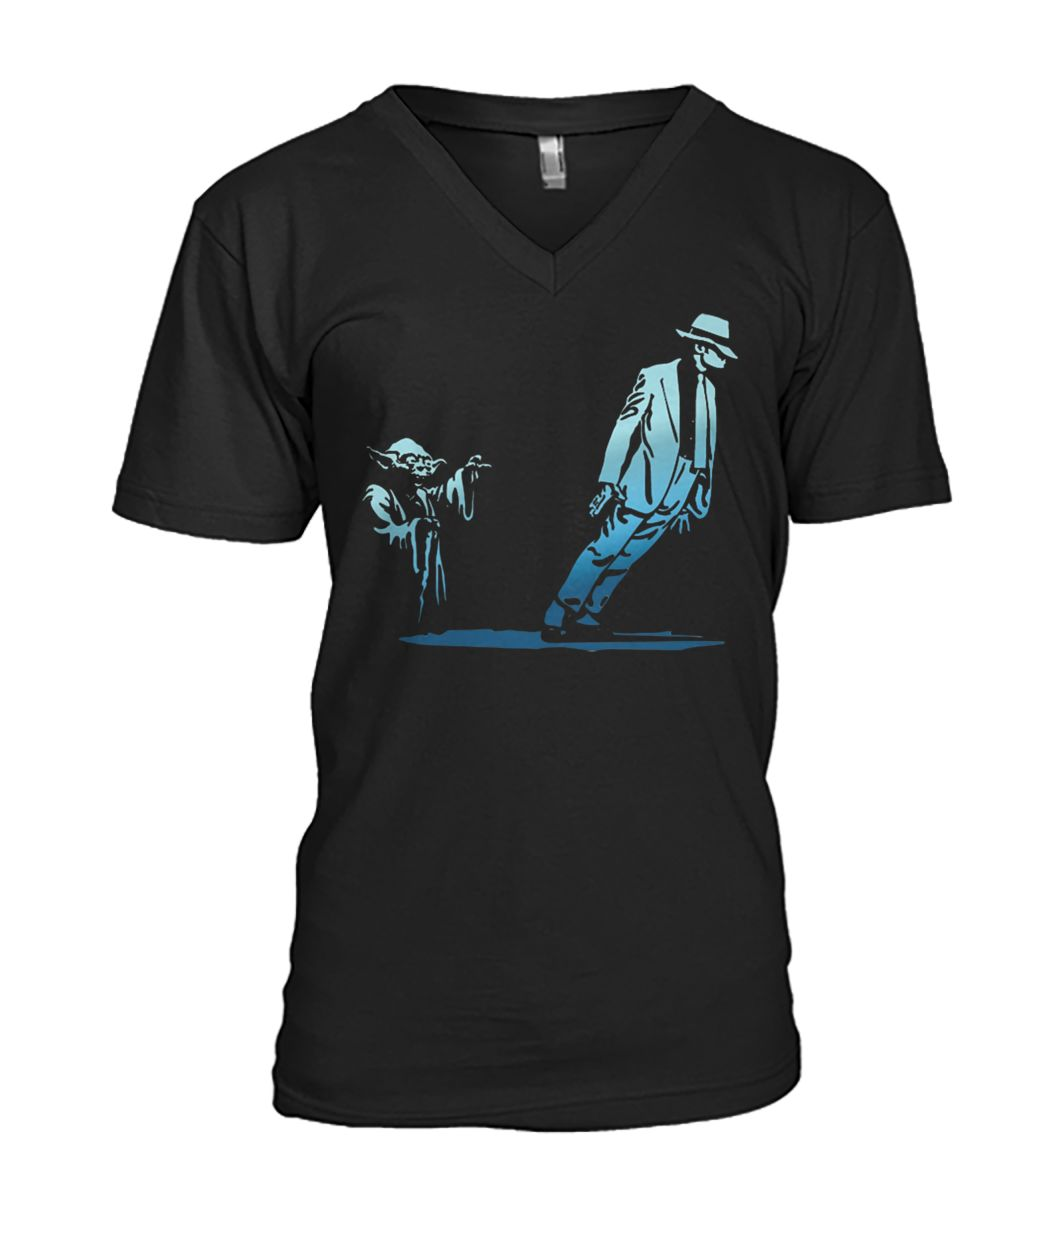 Yoda dance with michael jackson mens v-neck